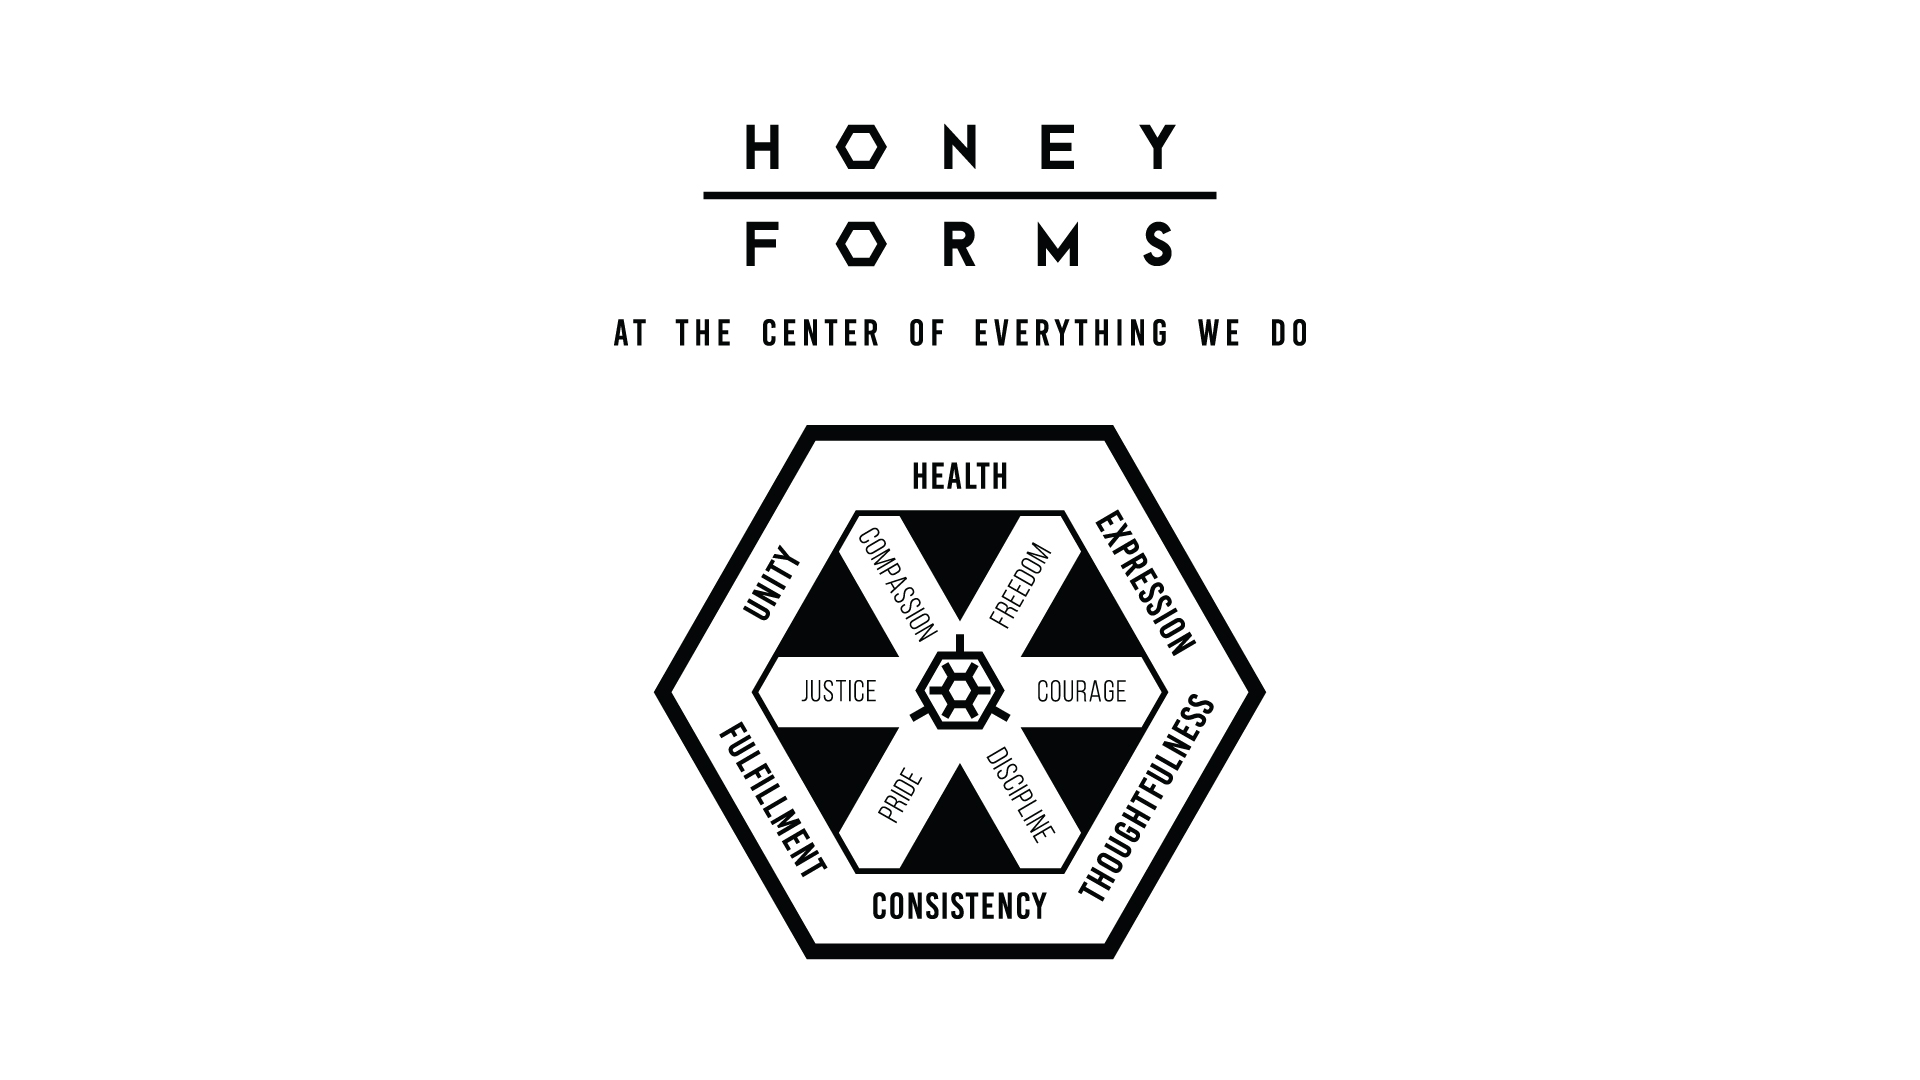 HONEY-FORMS-Company-Values-v3.jpg